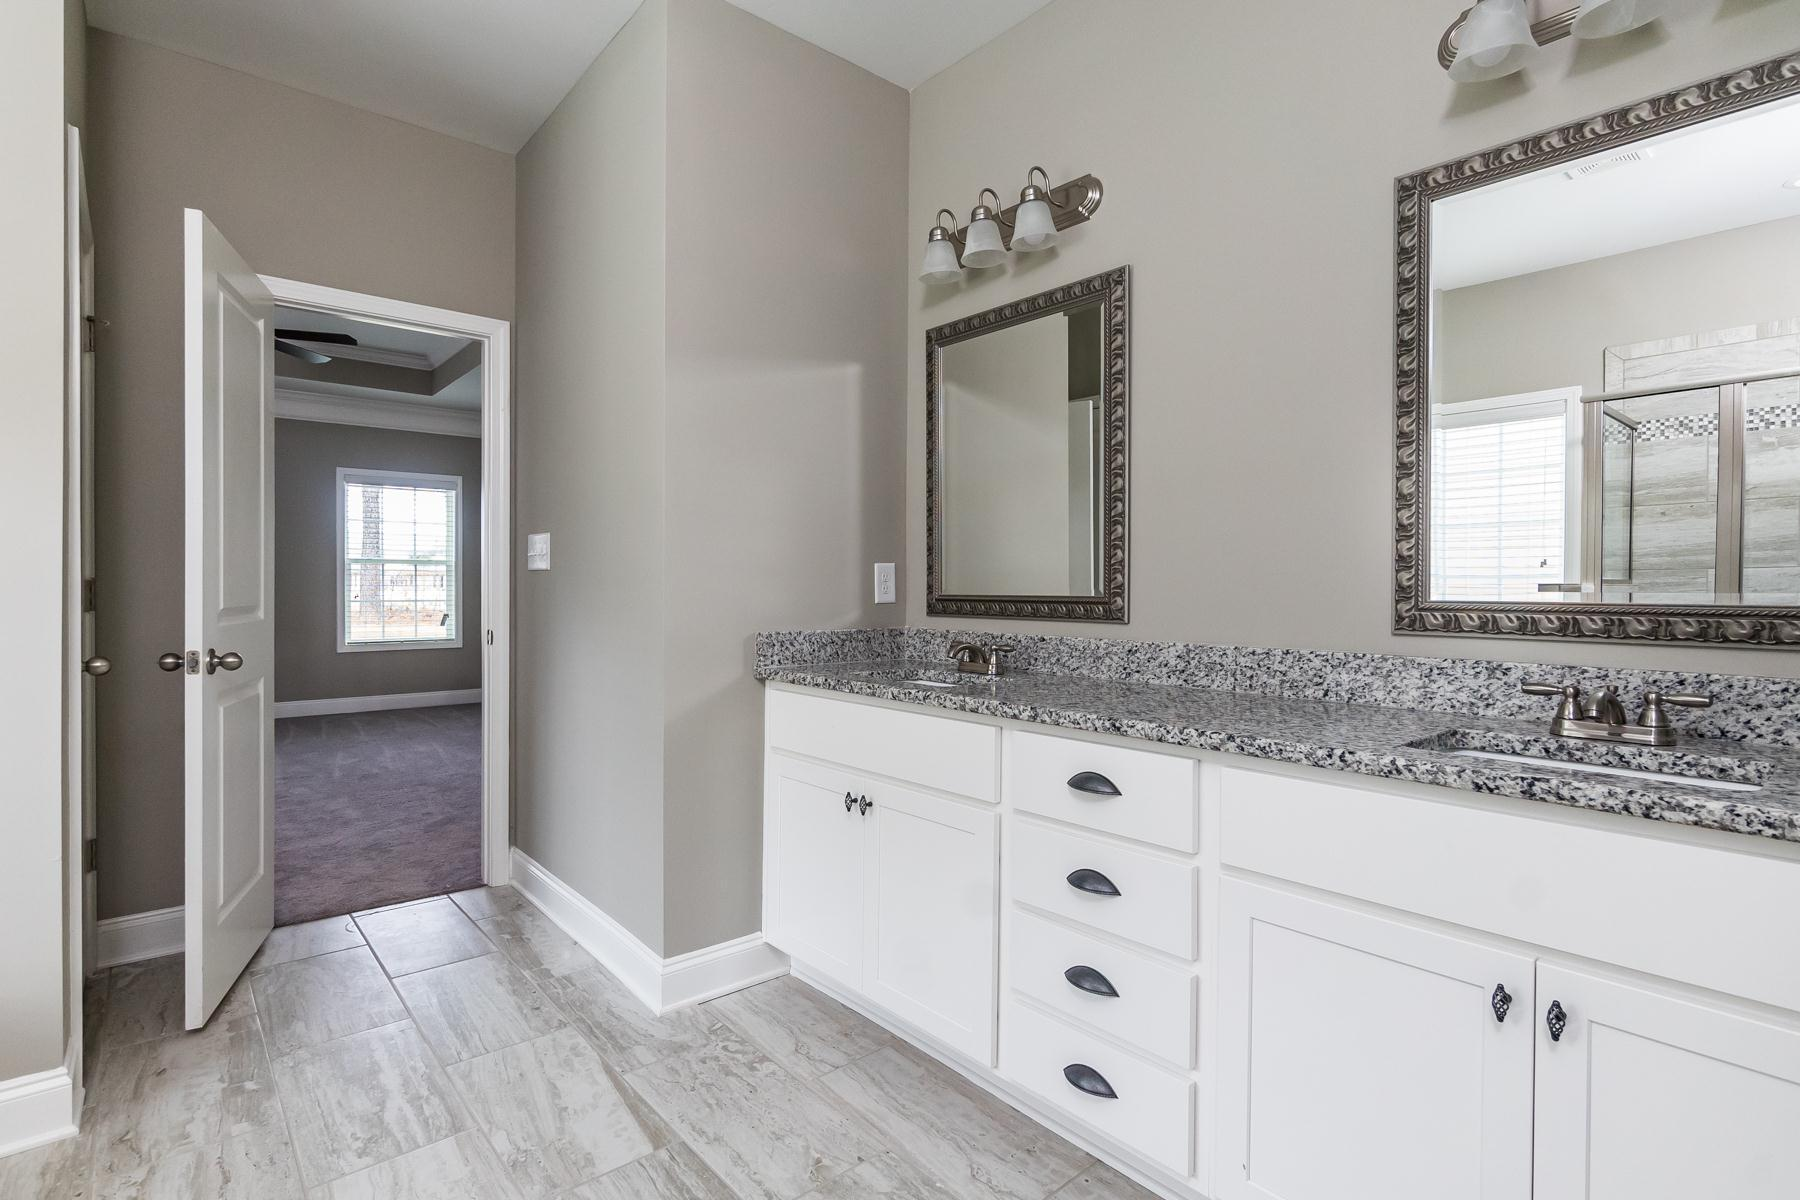 Bathroom featured in the Redbud By Hughston Homes in Macon, GA